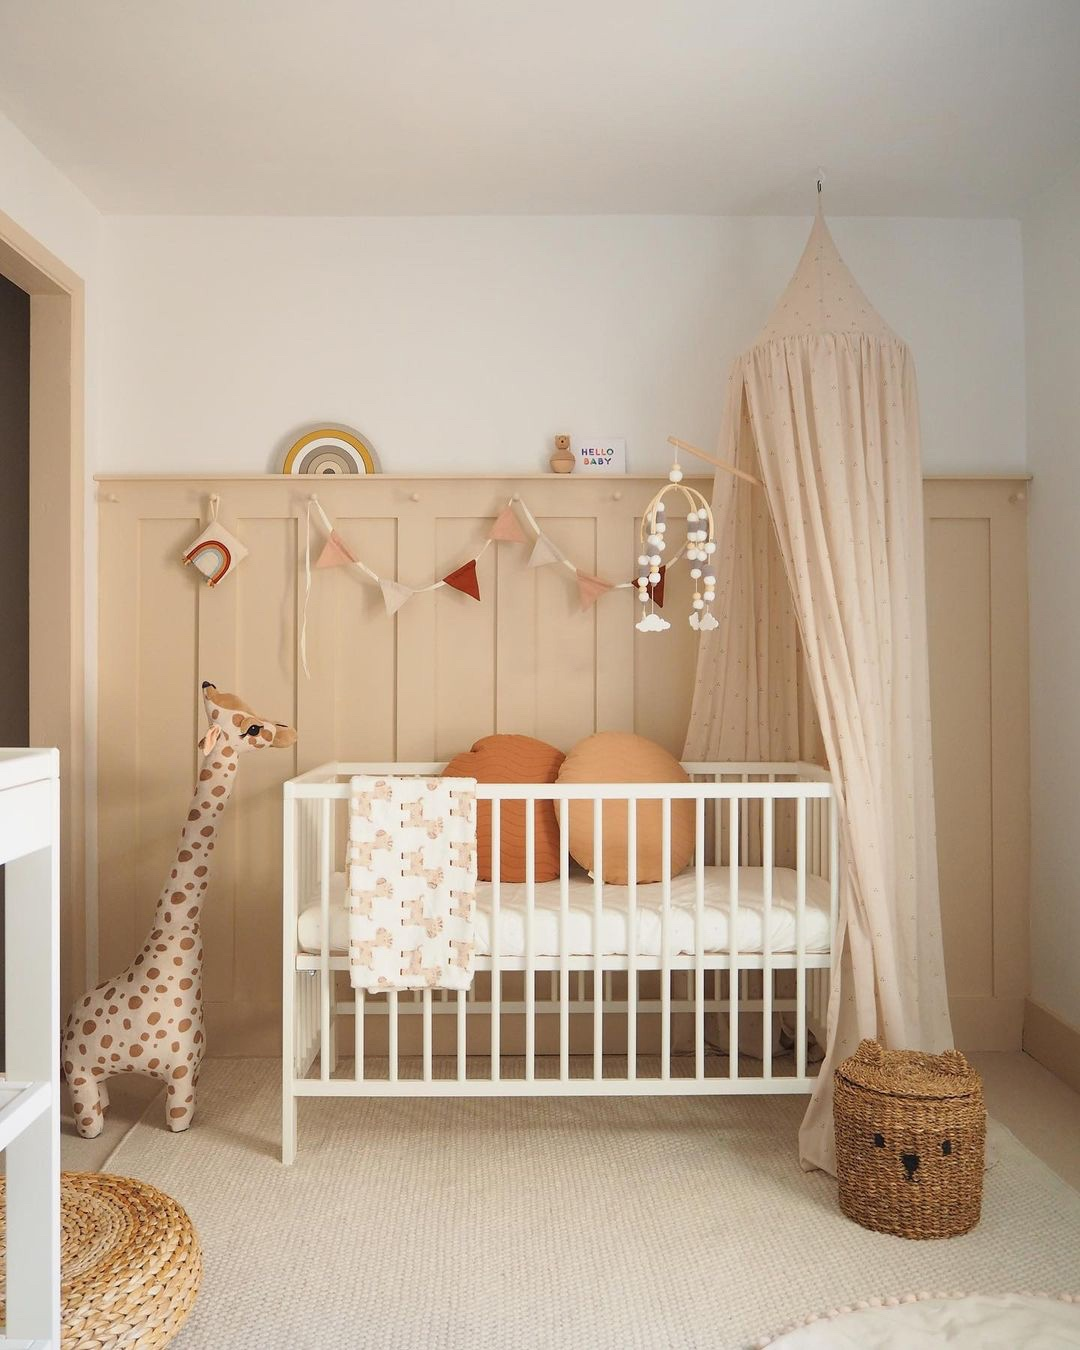 Make a creative decor with a pillow for your nursery decoration